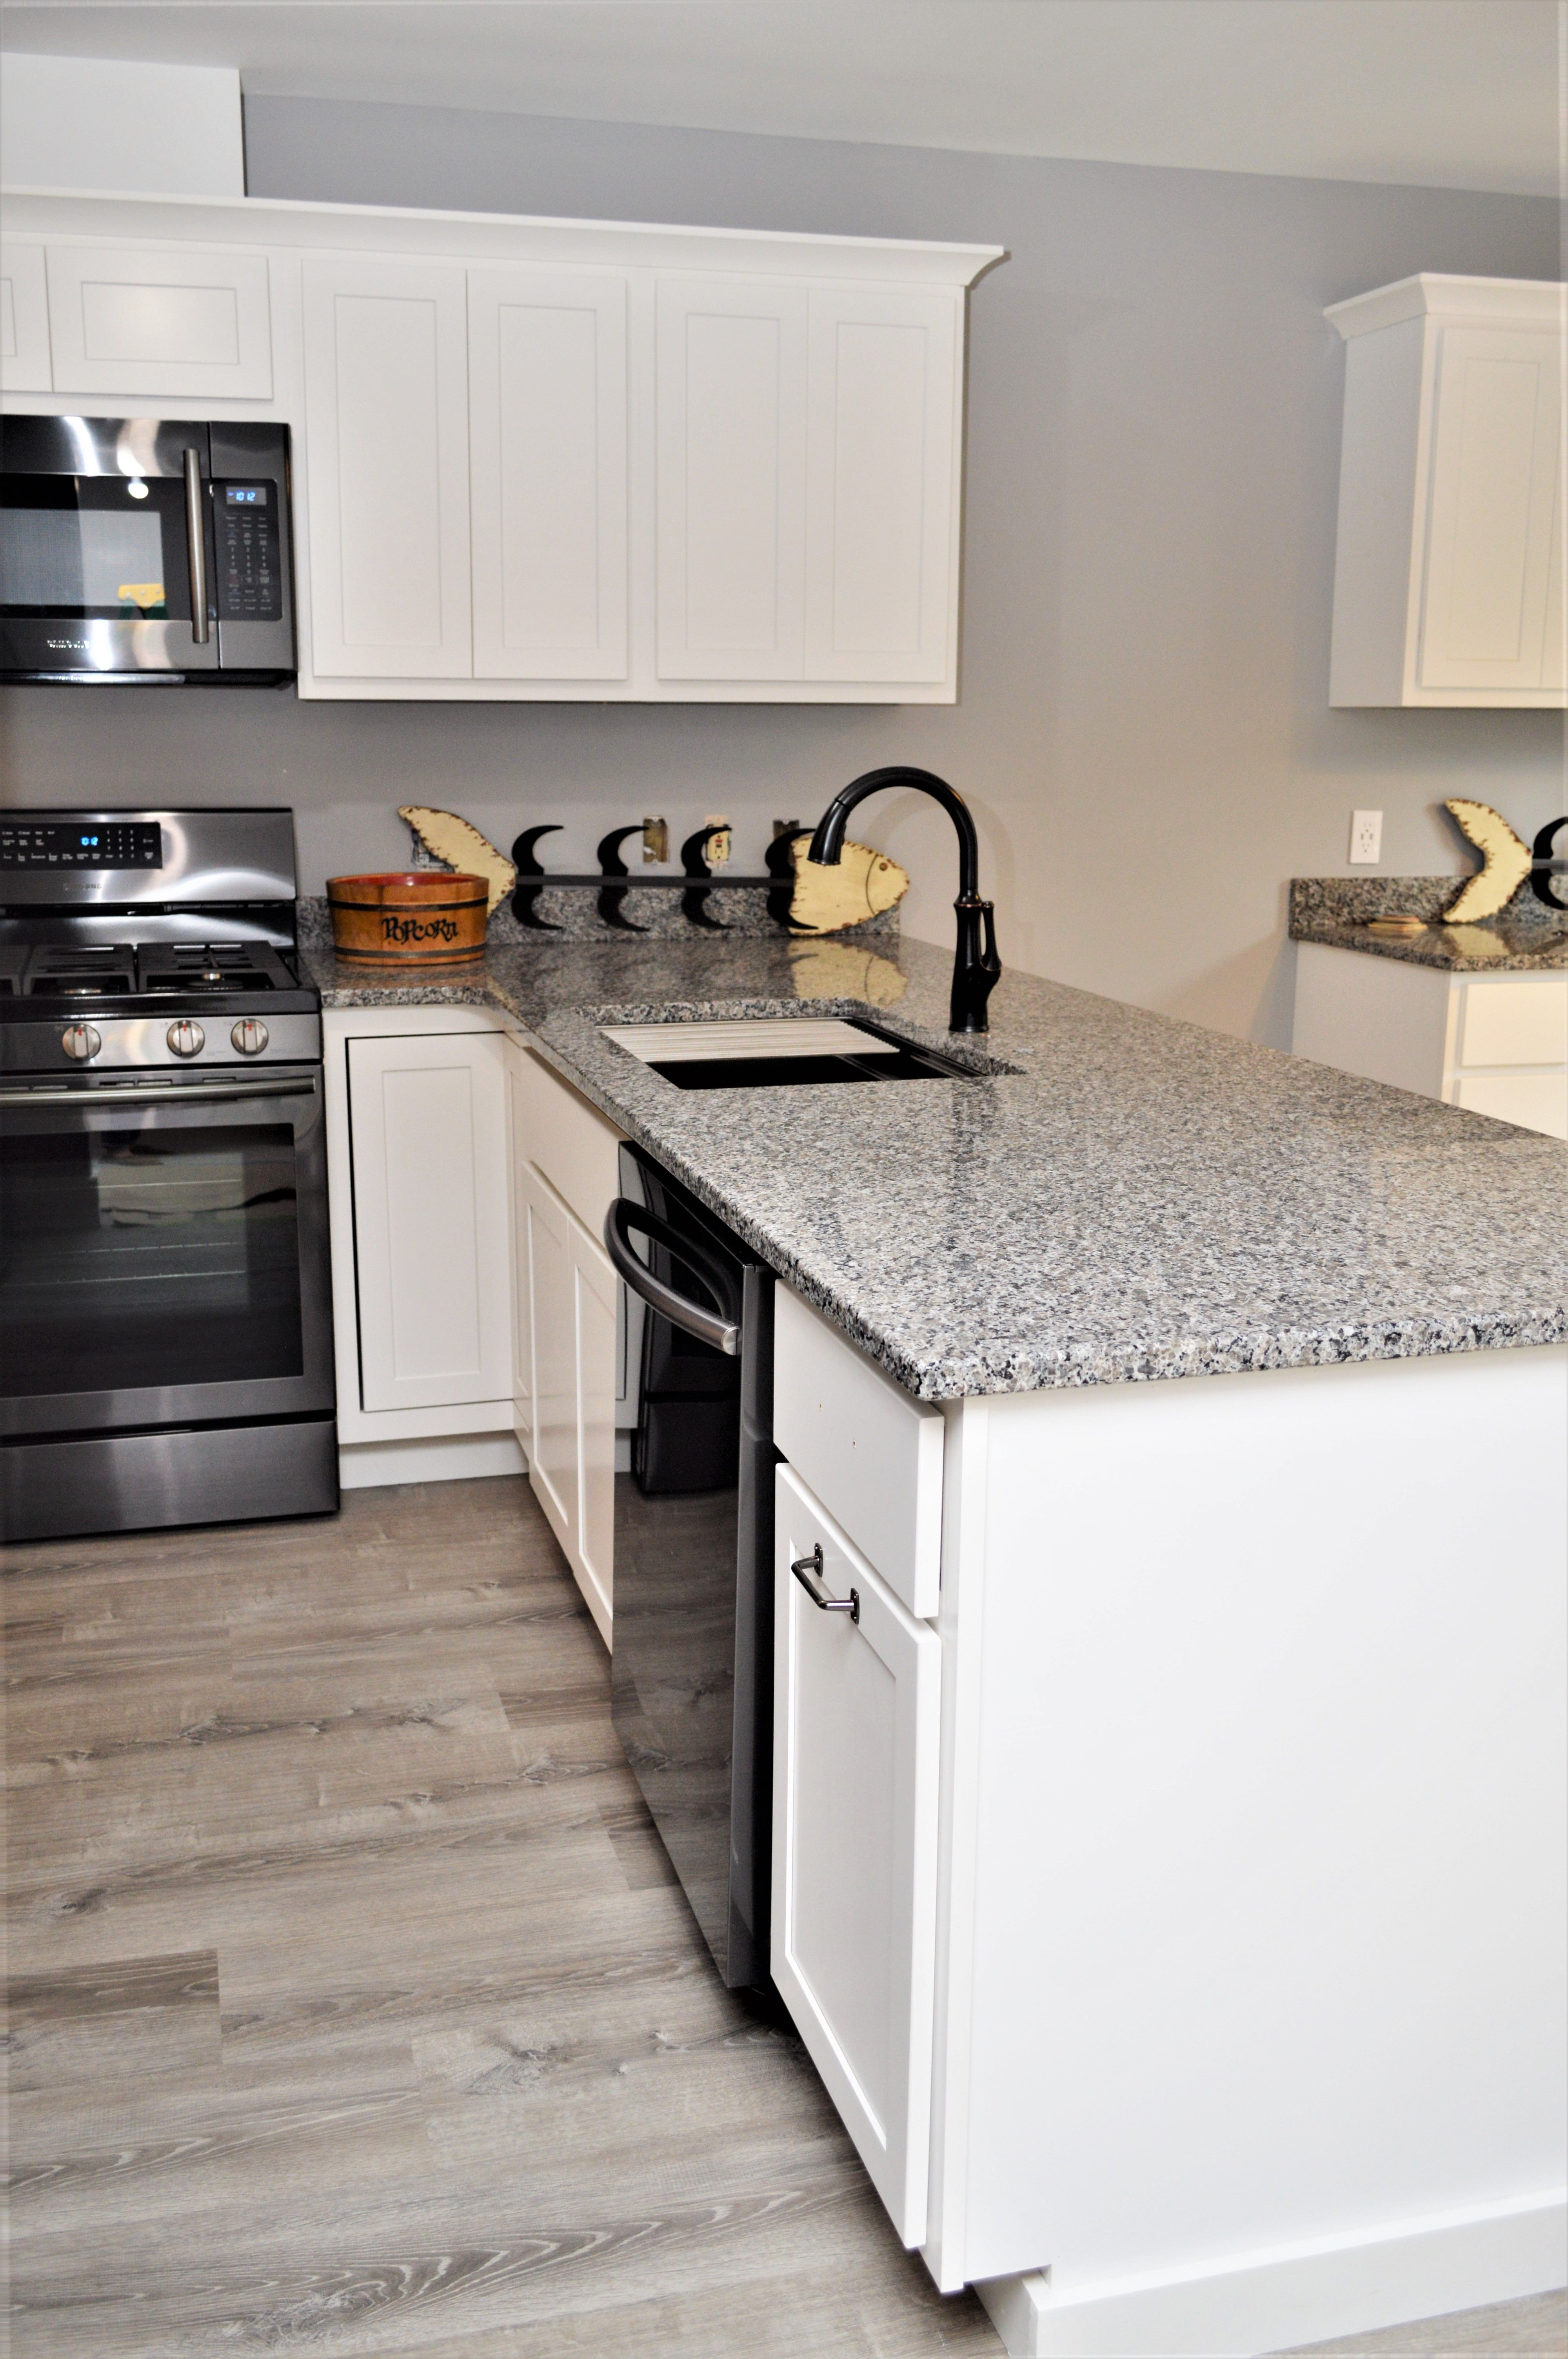 Granite countertop, Double Radius edge detail, Silicone ... on Backsplash Ideas For Black Granite Countertops And Maple Cabinets  id=46829